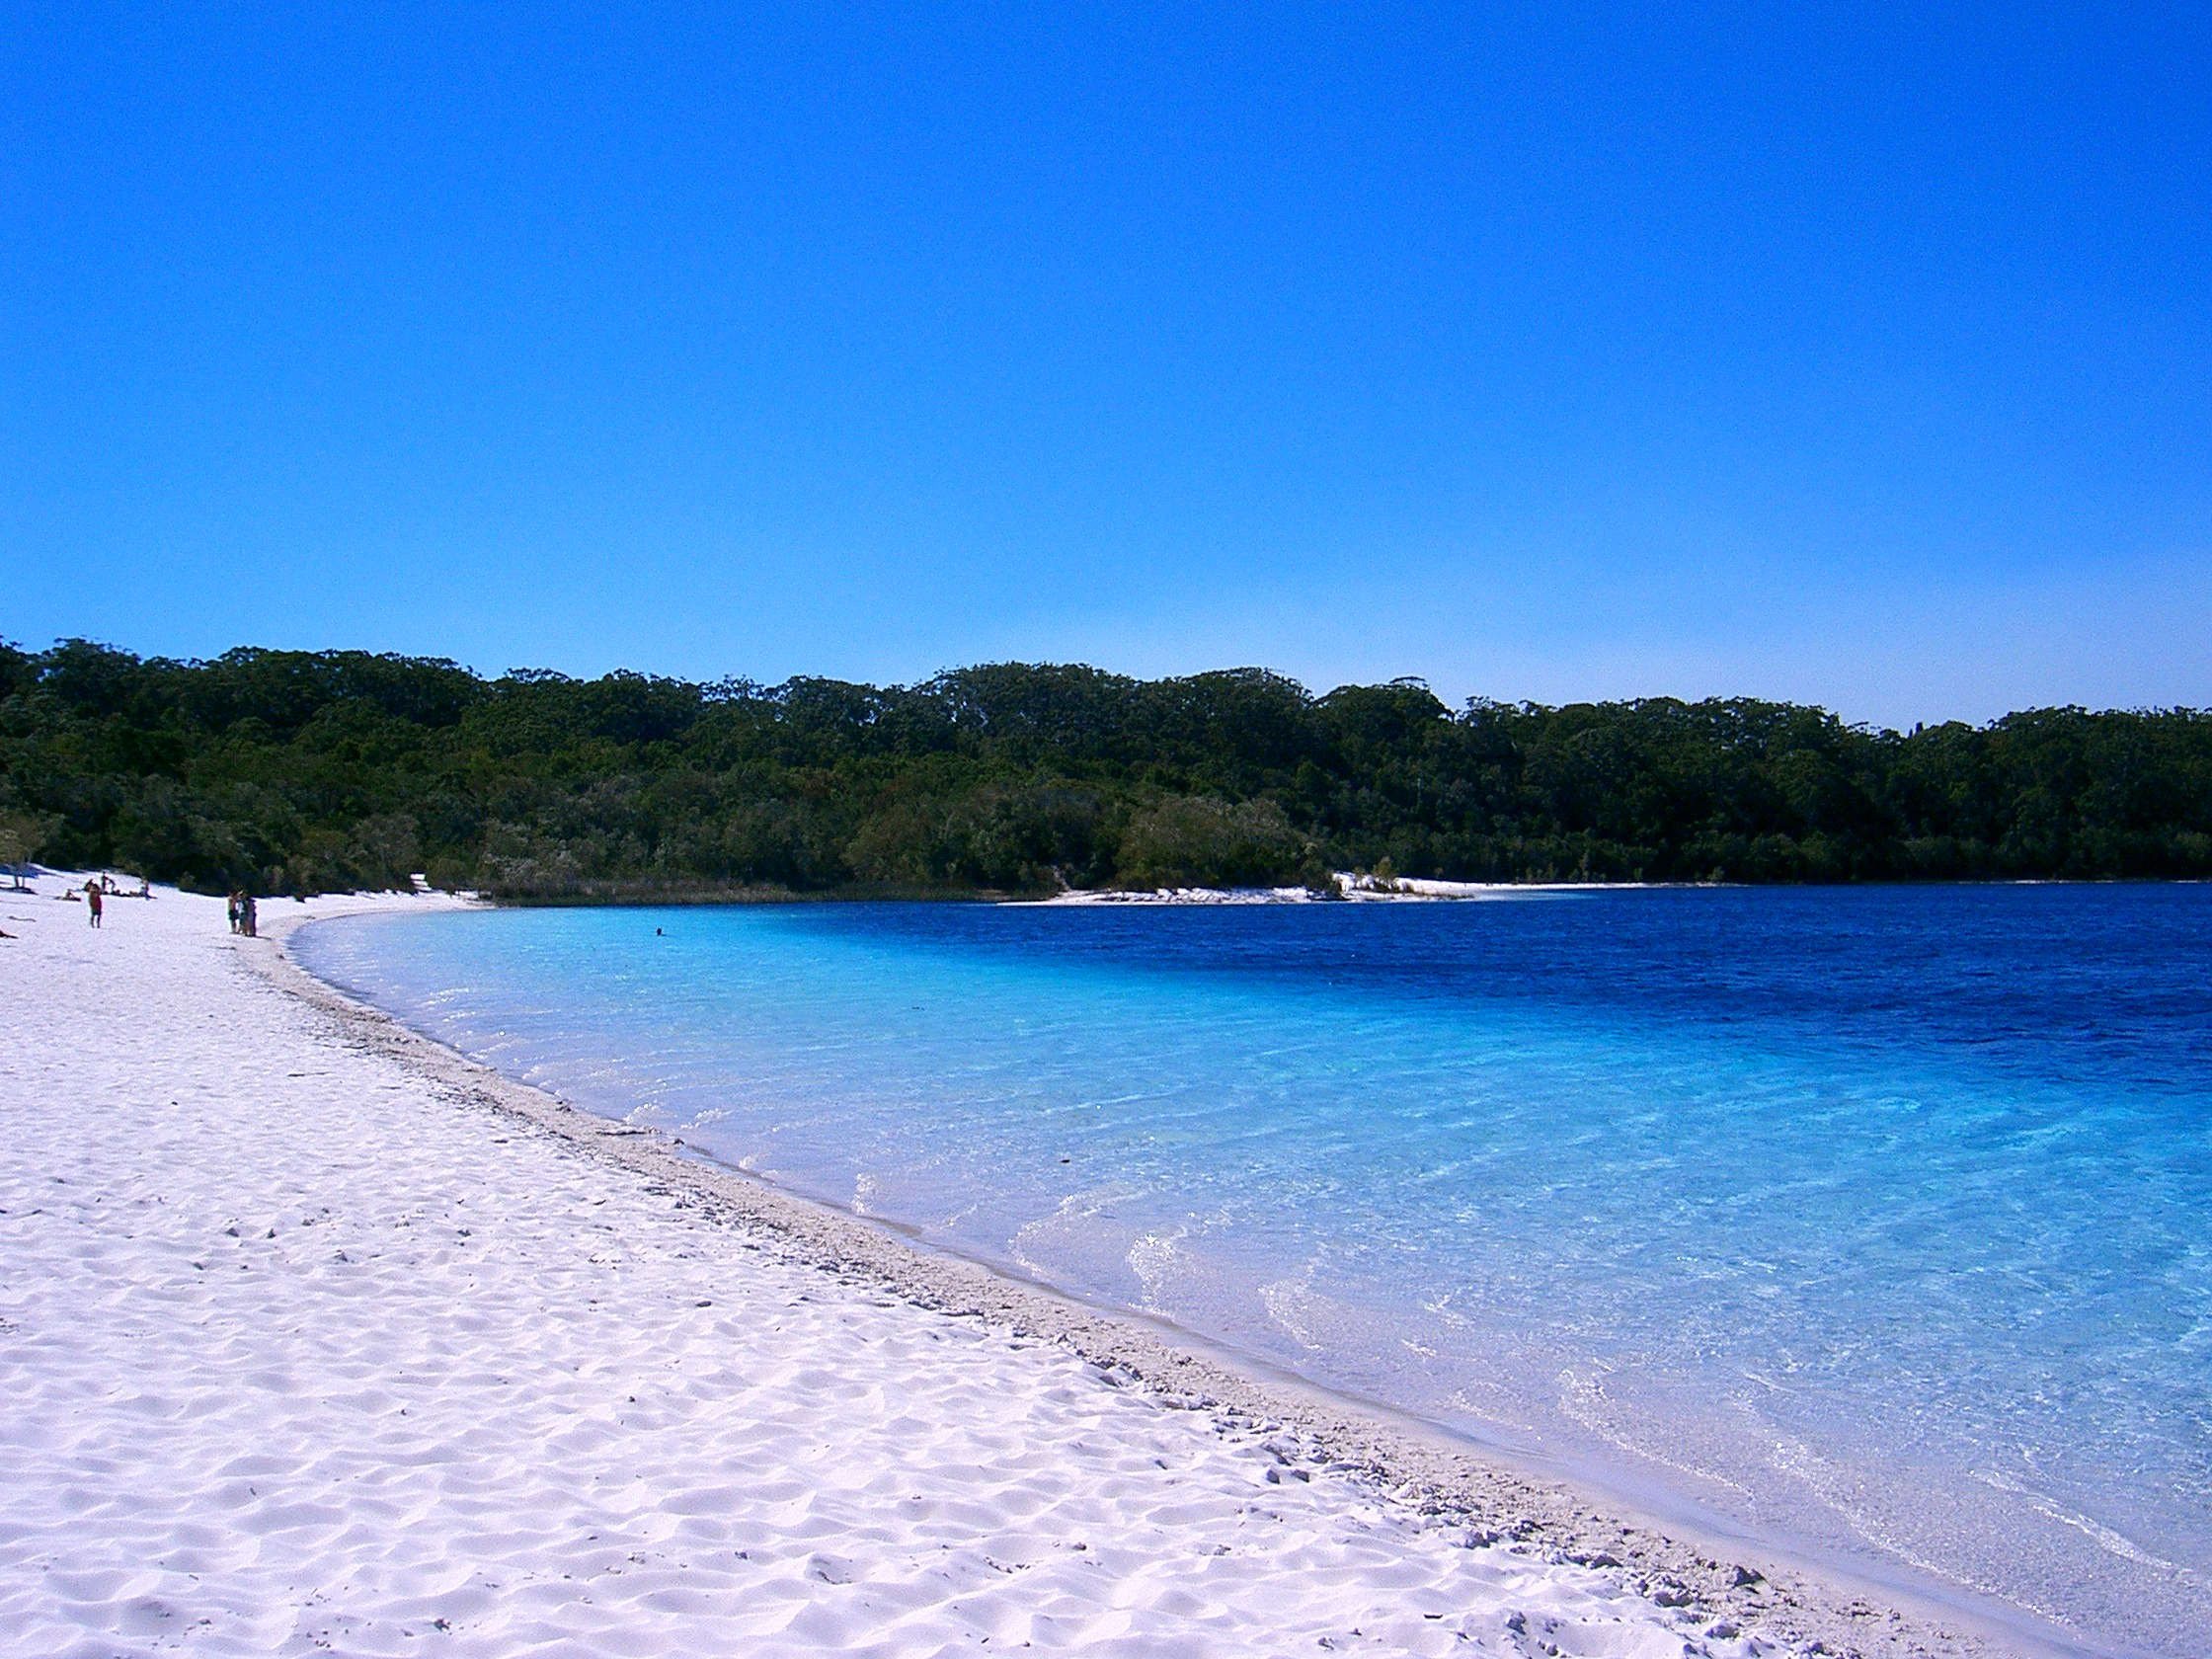 Fraser Island, Queensland - The world's largest sand island